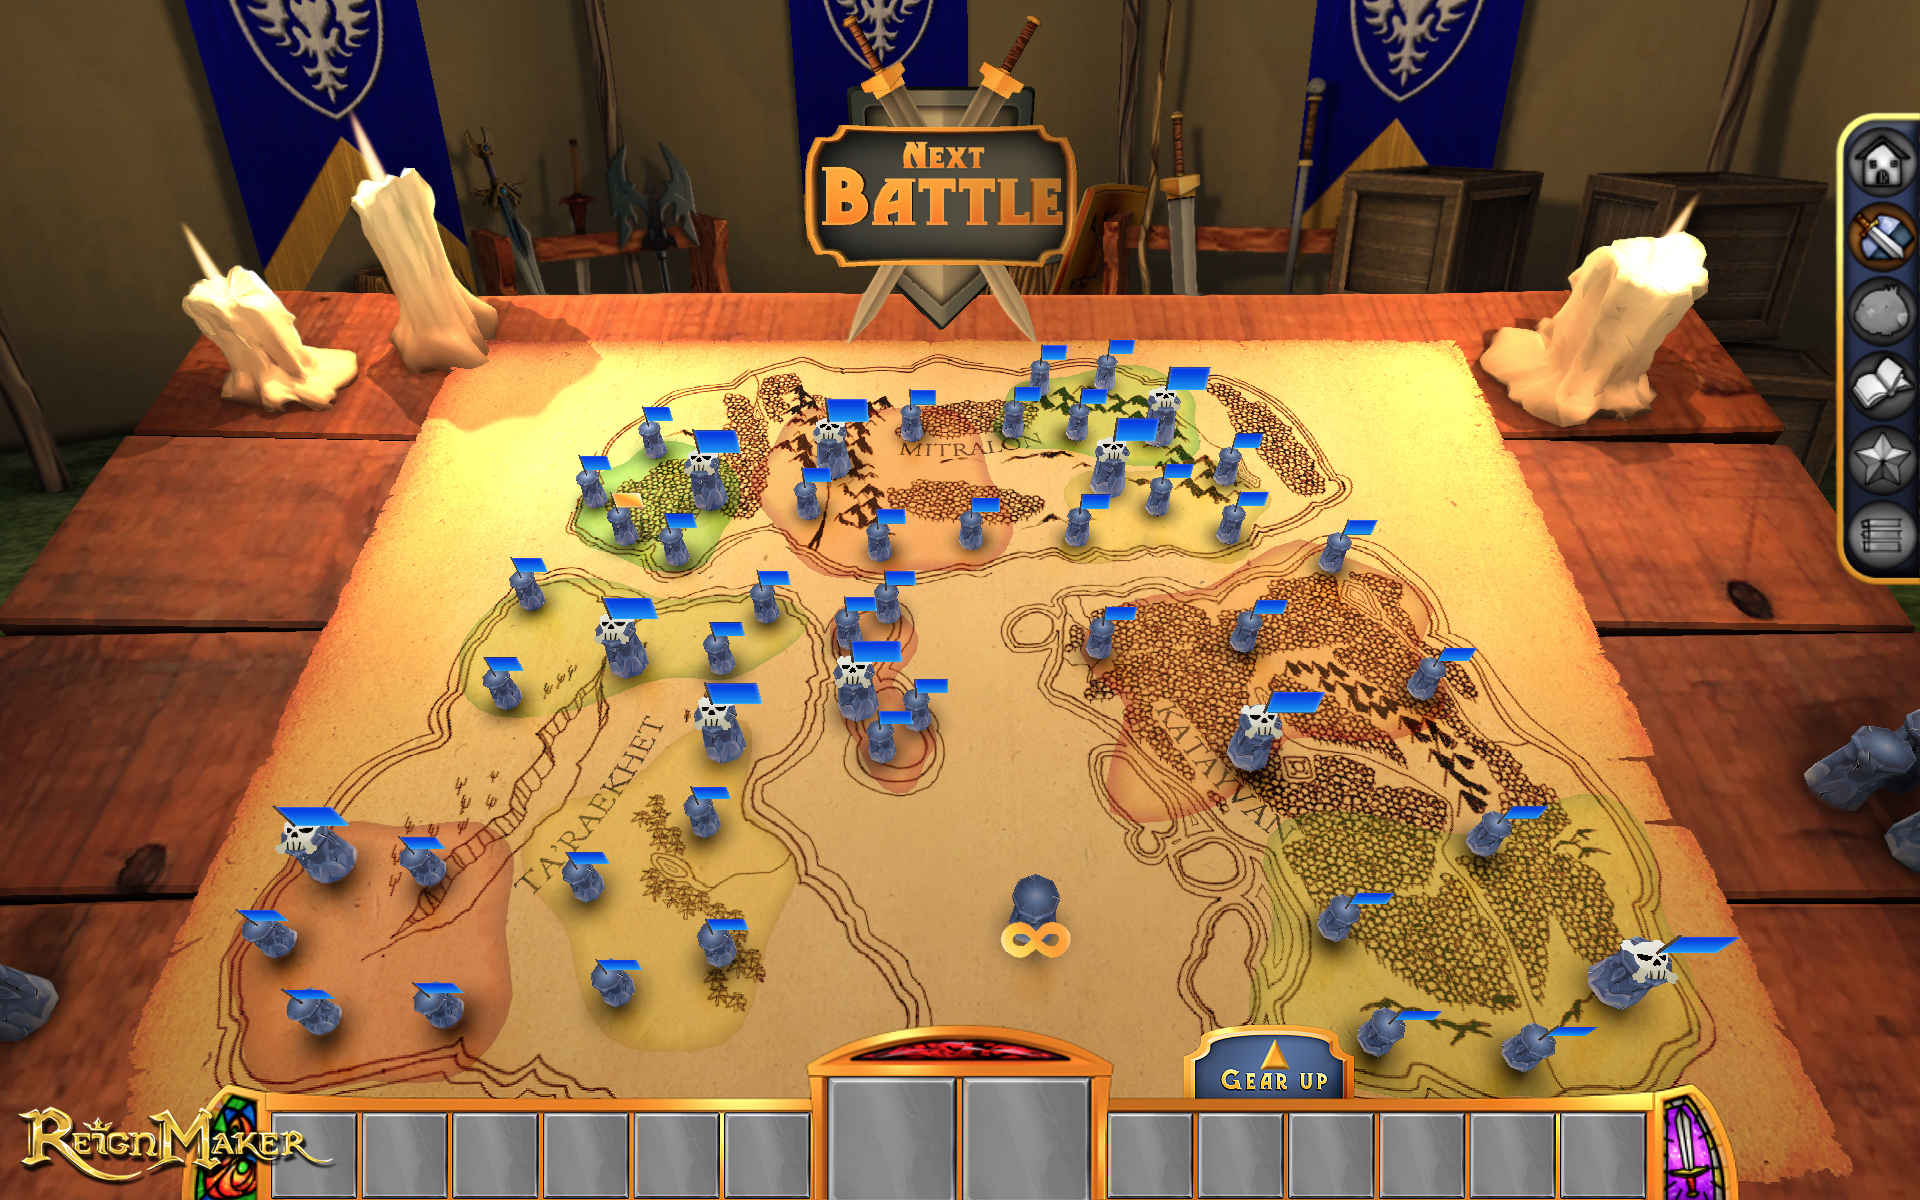 City Building Political Tower Defence Strategy Game ReignMaker Greenlit and Playable at PAX East